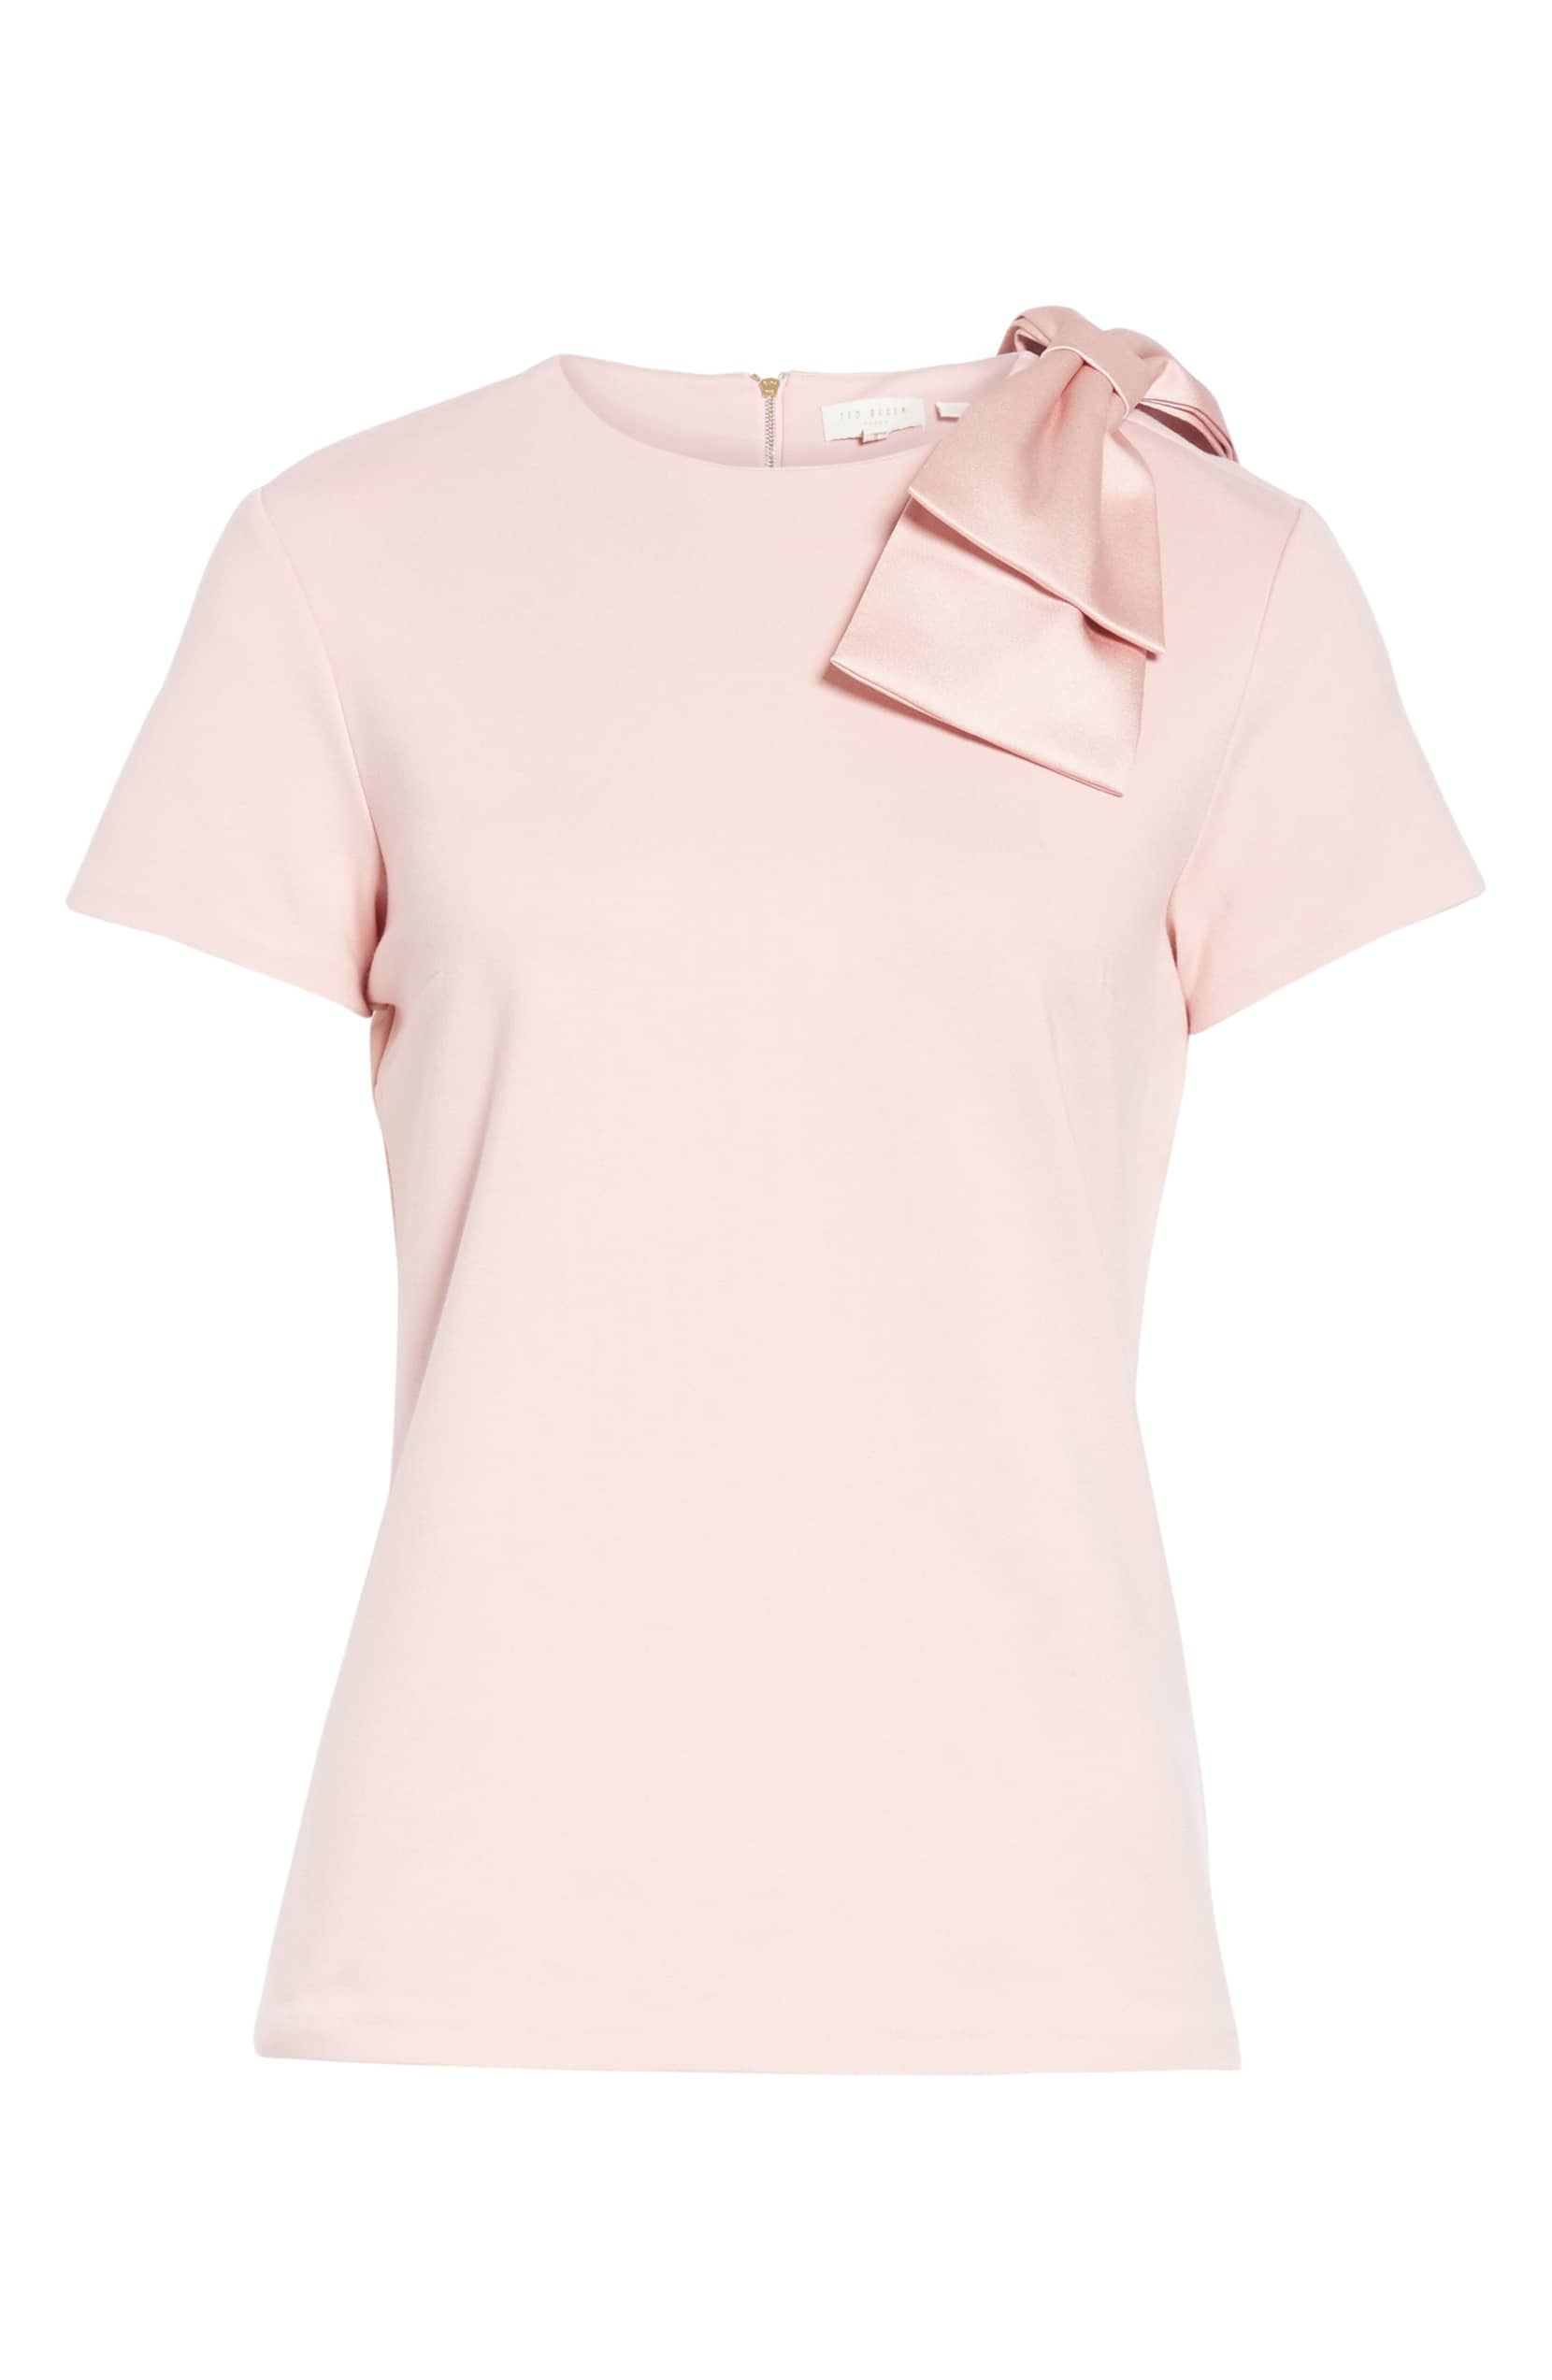 7c94509d5 Ted Baker London Joyous Bow Shoulder Top - Dusky Pink